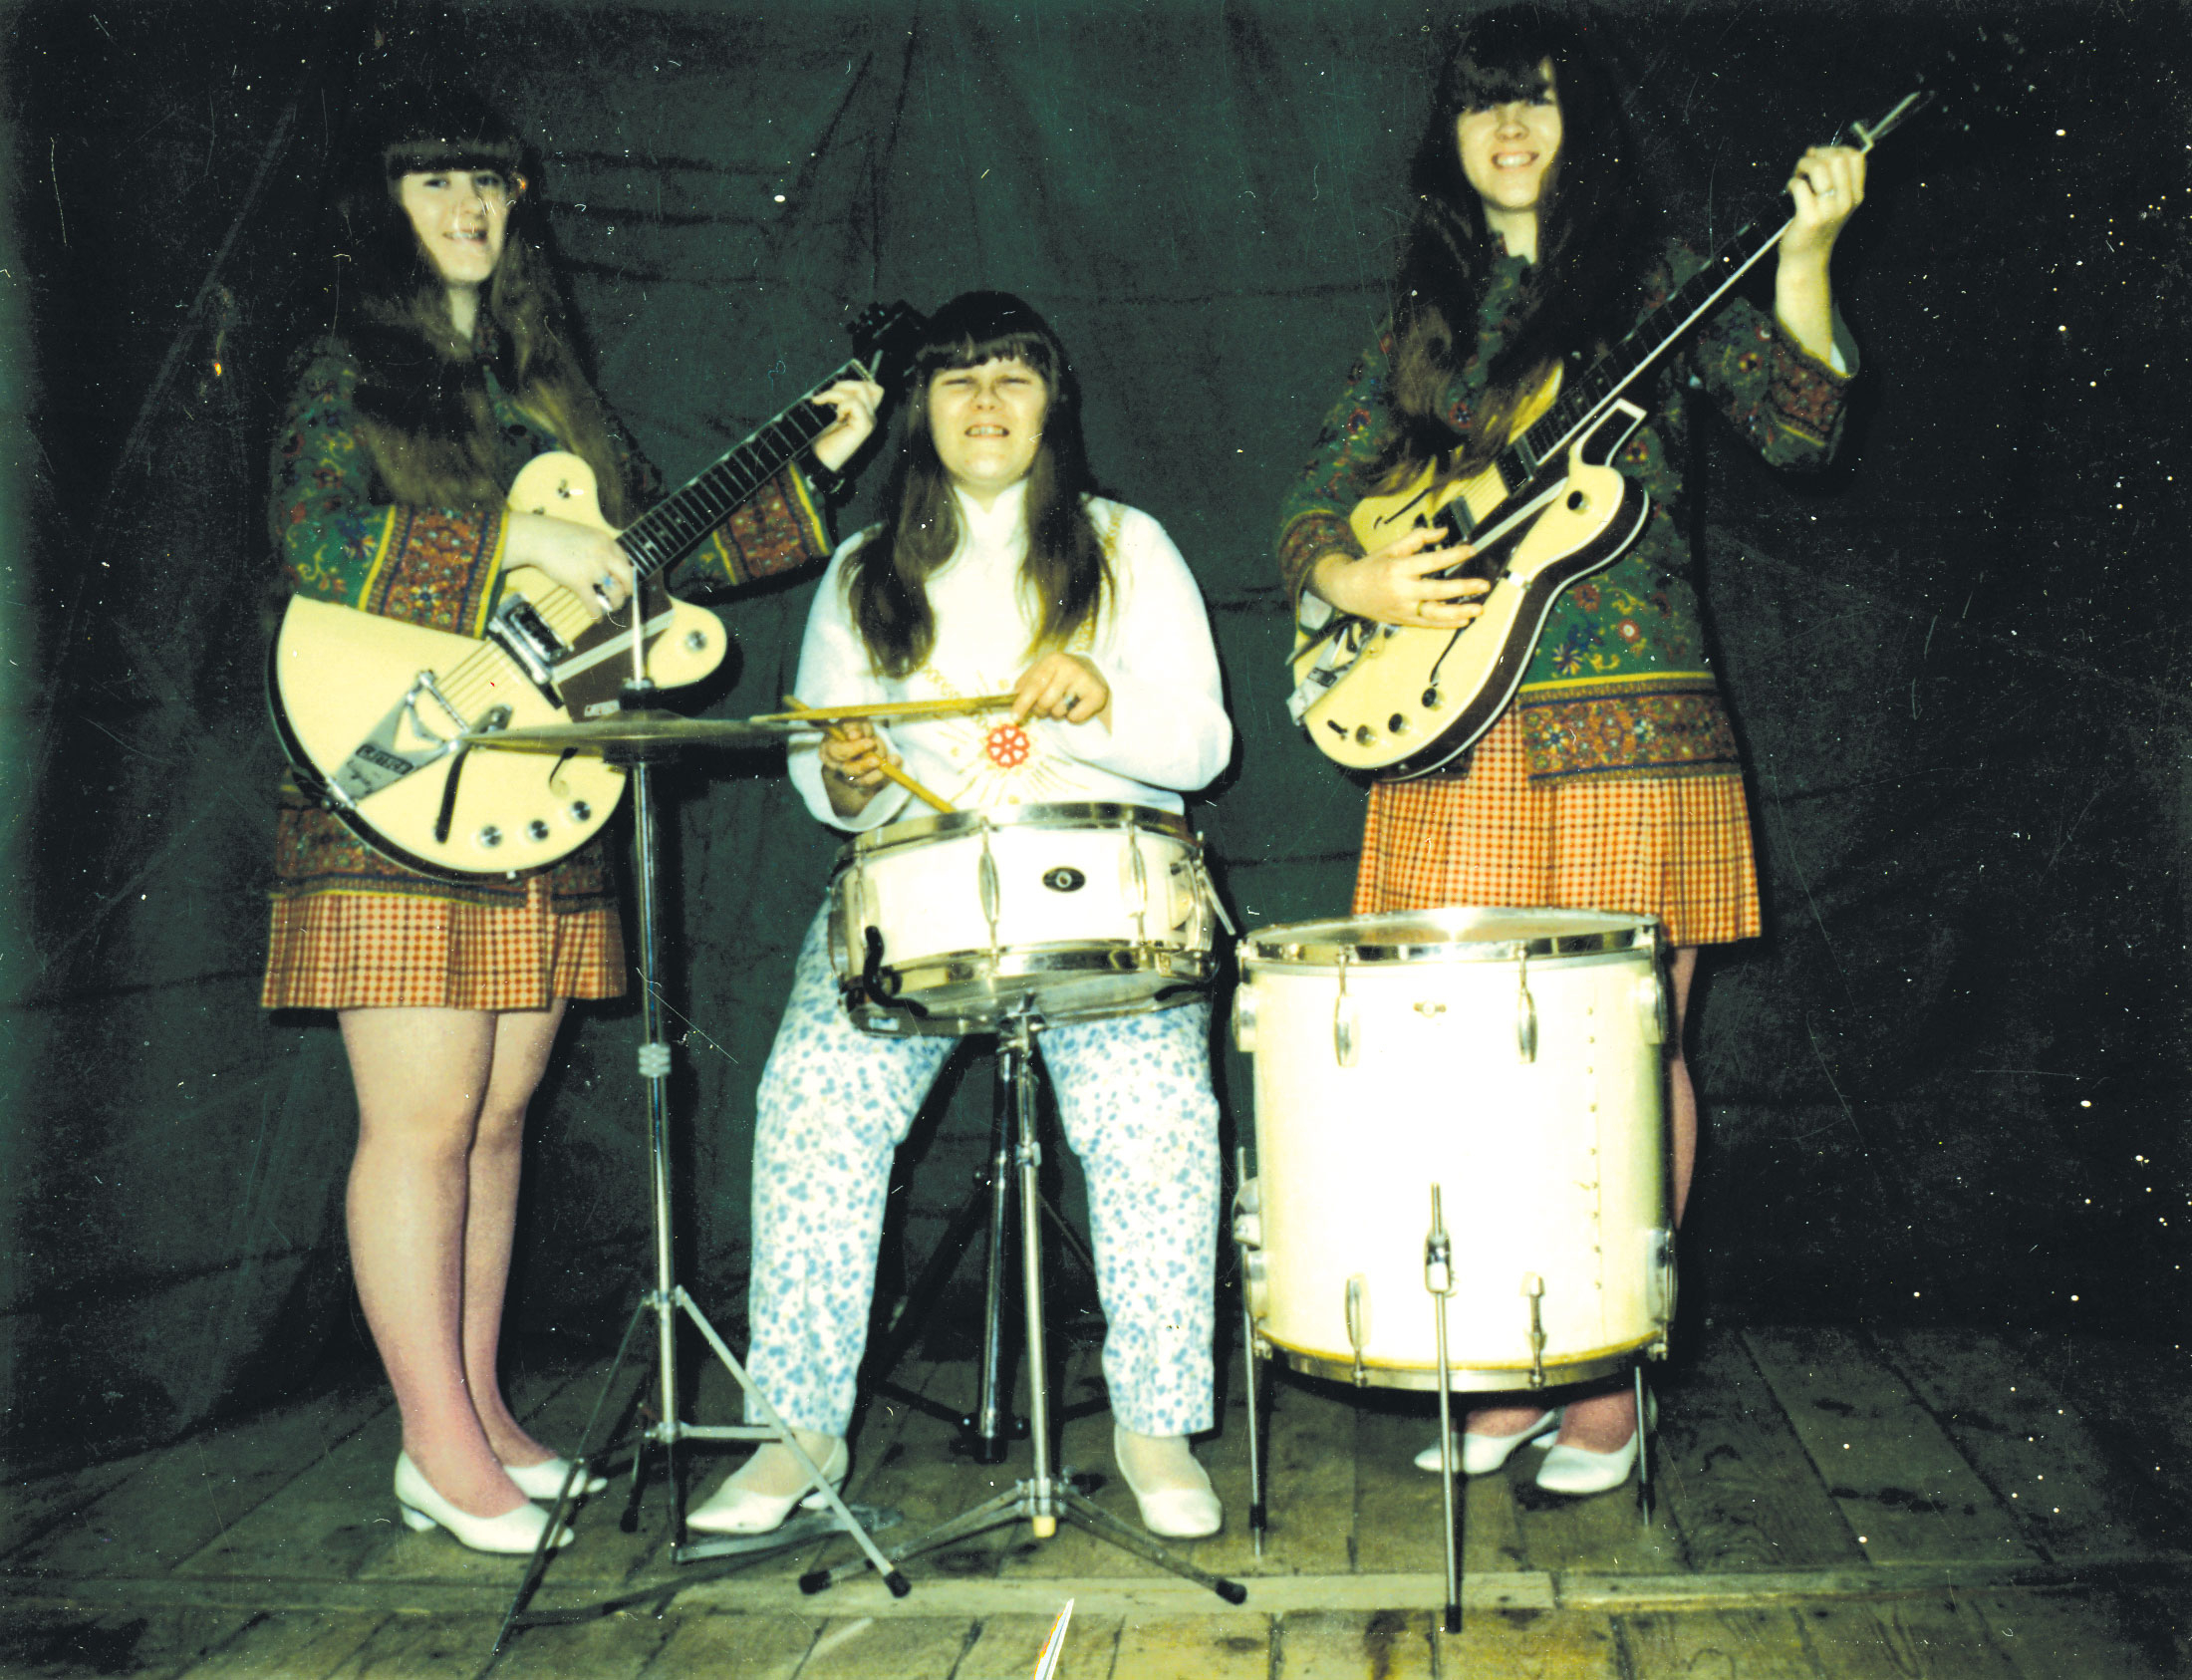 Shaggs Reflect on Divisive 'Philosophy of the World' Album - Rolling Stone